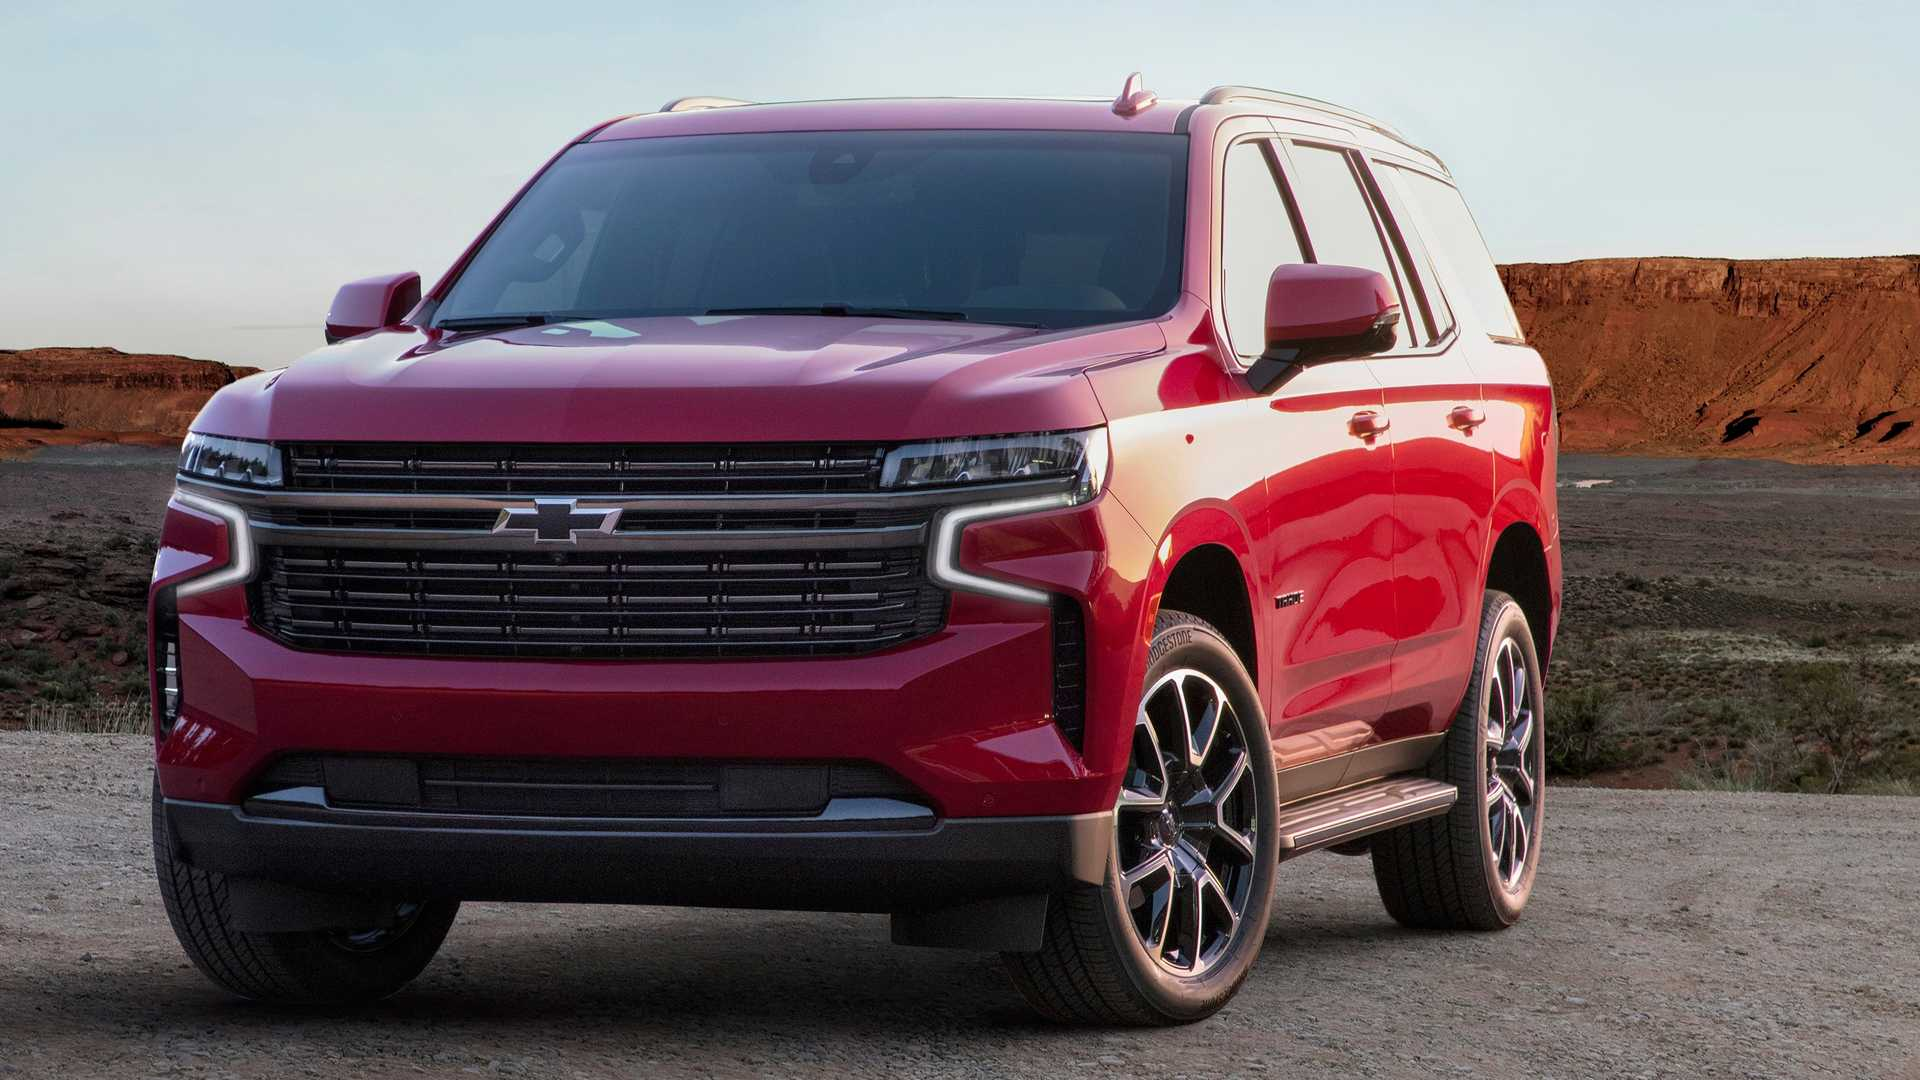 2021 Chevy Tahoe And Suburban Gain Performance Parts Adding Power